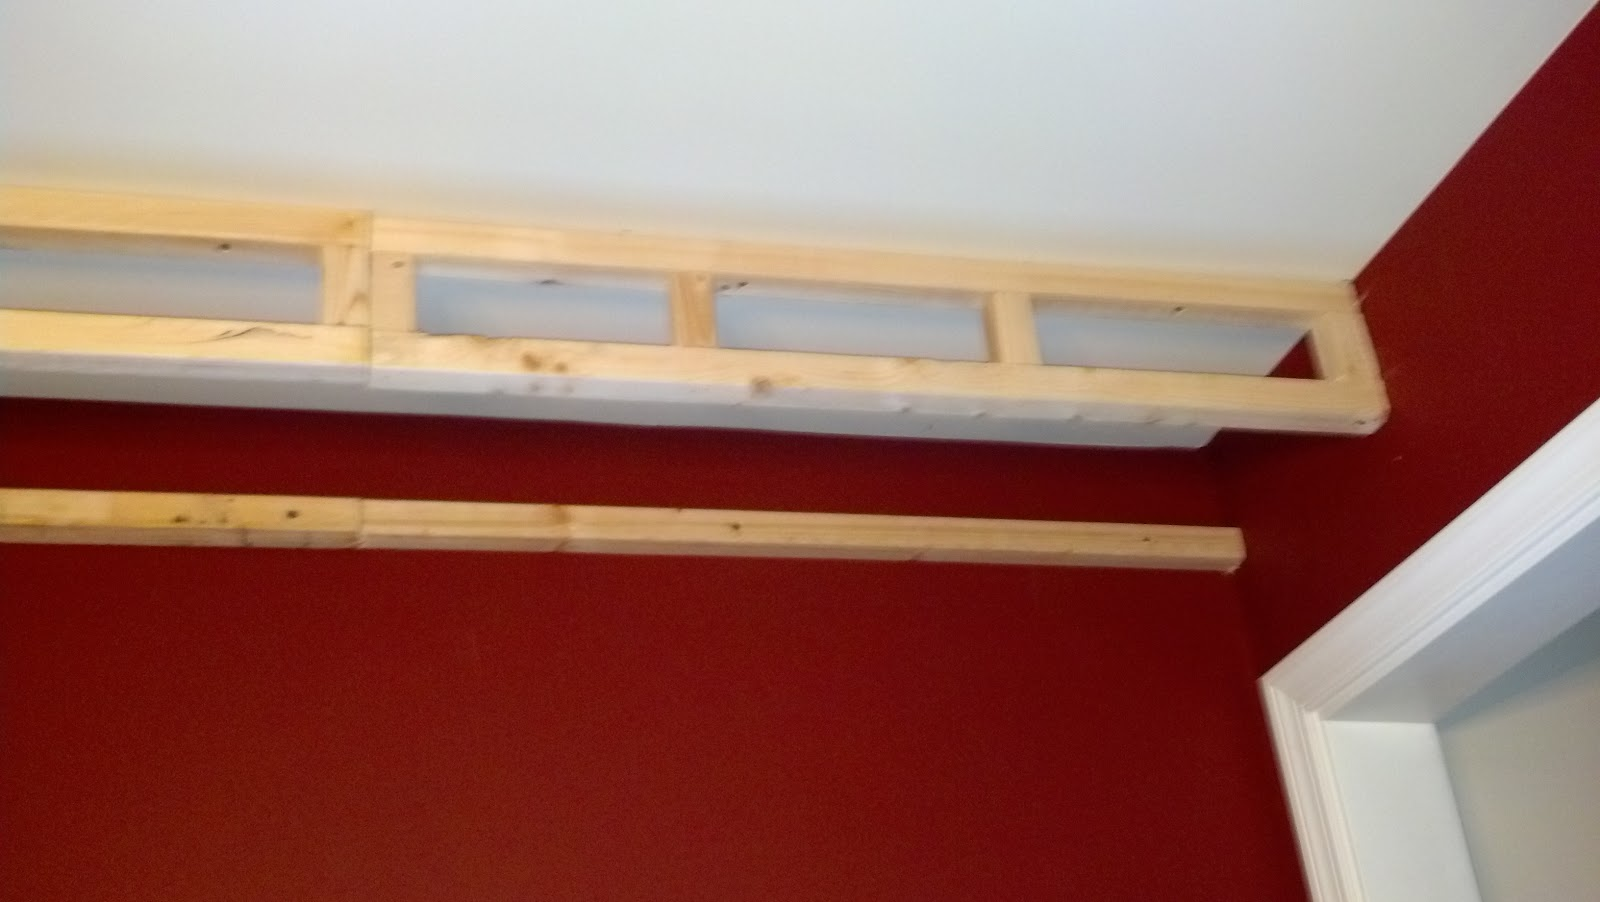 next you will need to build some mini ladder ish structures to hold what will be the wall of your tray make sure you have determined where your ceiling